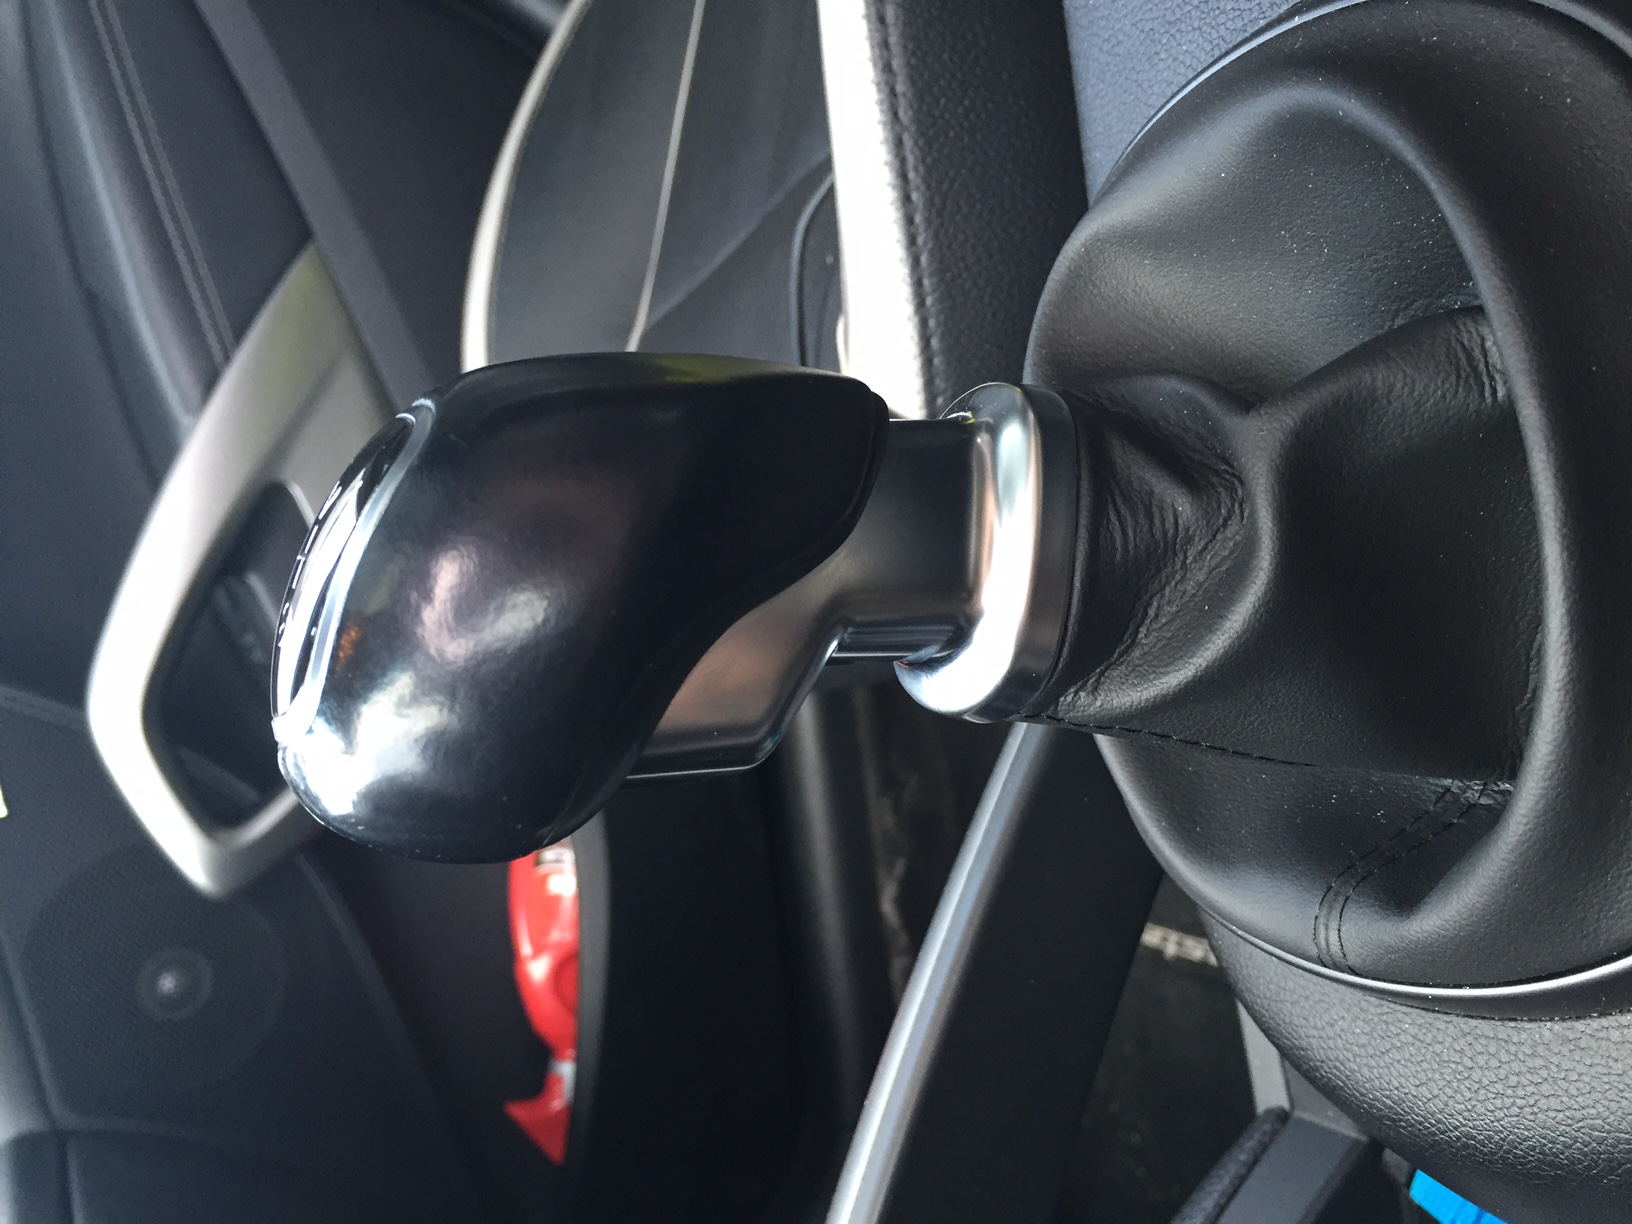 Custom Shift Knob VT Fighter Pilot Needs Your Help